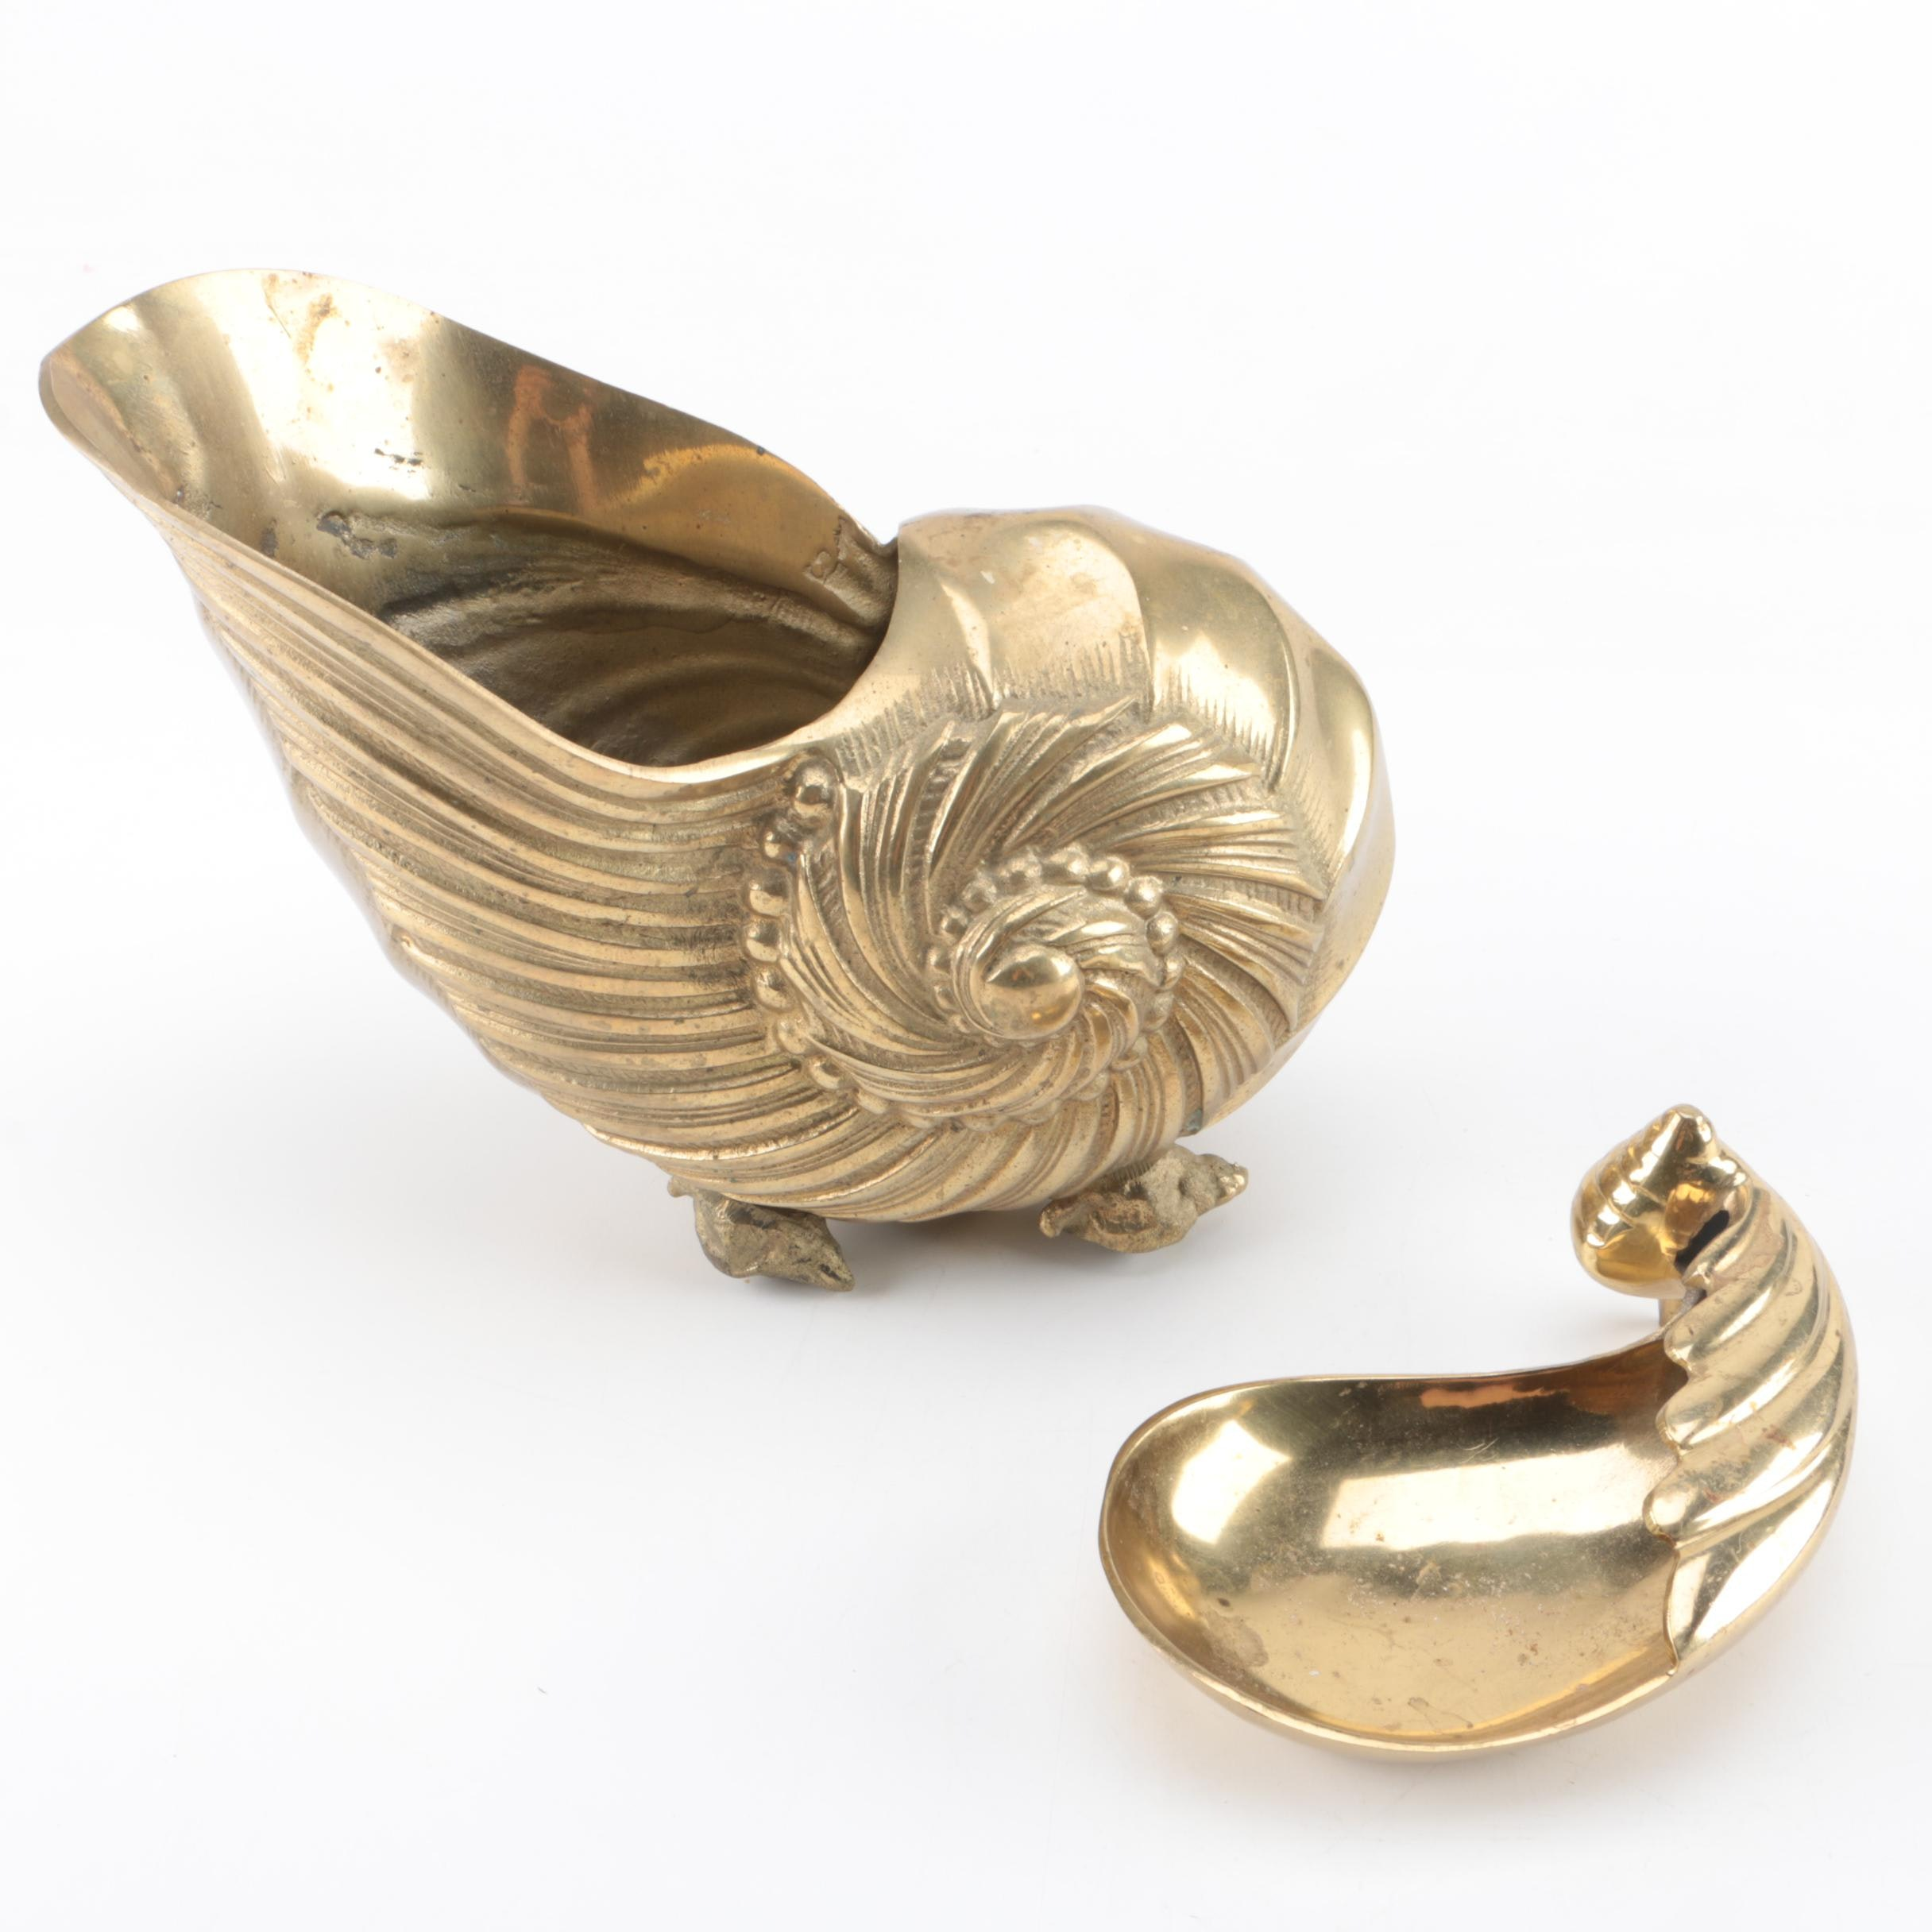 Gold Tone Metal Shell Motif Dishes